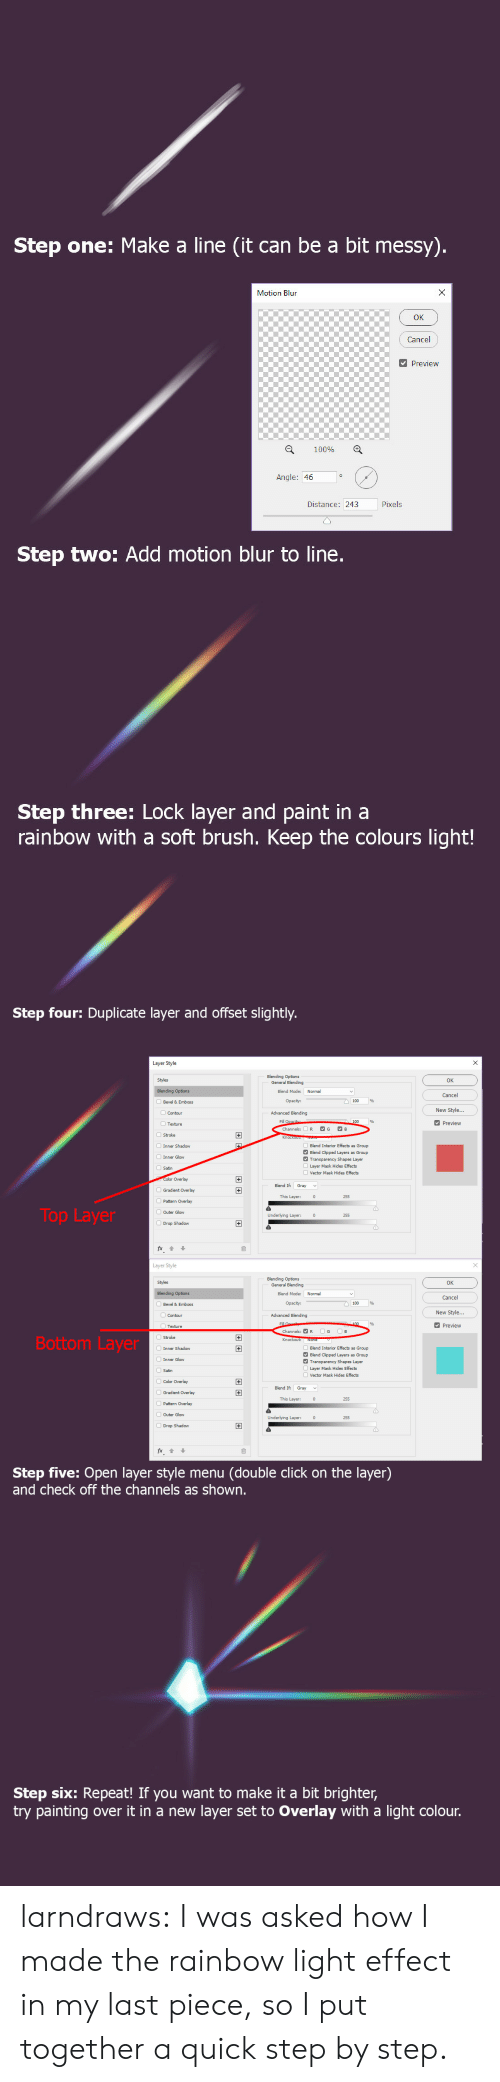 Click, Target, and Tumblr: Step one: Make a line (it can be a bit messy).  X  Motion Blun  Cancel  Preview  100%  Angle: 46  Pixels  Distance: 243  Step two: Add motion blur to line.  Step three: Lock layer and paint in a  rainbow with a soft brush. Keep the colours light!   Step four: Duplicate layer and offset slightly.  Layer Style  Blending Options  General Blending  Styles  OK  Blending Options  Blend Mode:  Normal  Cancel  Opacity:  Bevel & Emboss  New Style...  Advanced Blending  Contour  Fill Opacib  Channels:  Preview  Texture  G  B  R  +  Stroke  Inner Shadow  Blend Interior Effects  Blend Clipped Layers  Transparency Shapes Layer  s Group  Group  Inner Glow  Layer Mask Hides Effects  Satin  Vector Mask Hides Effects  Color Overlay  +  Blend If  Gray  Gradient Overlay  This Layer:  255  Pattern Overlay  Top Layer  OOuter Glow  Underlying Layer:  255  Drop Shadow  Layer Style  Blending Options  General Blending  Styles  OK  Normal  Blending Options  Blend Mode:  Cancel  Opacity:  Bevel & Emboss  New Style...  Advanced Blending  Contour  Fill  100  Preview  Texture  G  B  Channels: R  Bottom Layer  Knockout: None  Inner Shadow  Blend Interior Effects  Blend Clipped Layers  Transparency Shapes Layer  Layer Mask Hides Effects  +  s Group  Group  Inner Glow  Satin  Vector Mask Hides Effects  Color Overlay  +  Blend If  Gradient Overlay  +  This Layer:  255  Pattern Overlay  Outer Glow  Underlying Layer:  255  Drop Shadow  fx  Step five: Open layer style menu  and check off the channels as shown.  (double click on the layer)   Step six: Repeat! If you want to make it a bit brighter,  try painting  layer set to Overlay with a light colour.  over it in a new larndraws:  I was asked how I made the rainbow light effect in my last piece, so I put together a quick step by step.